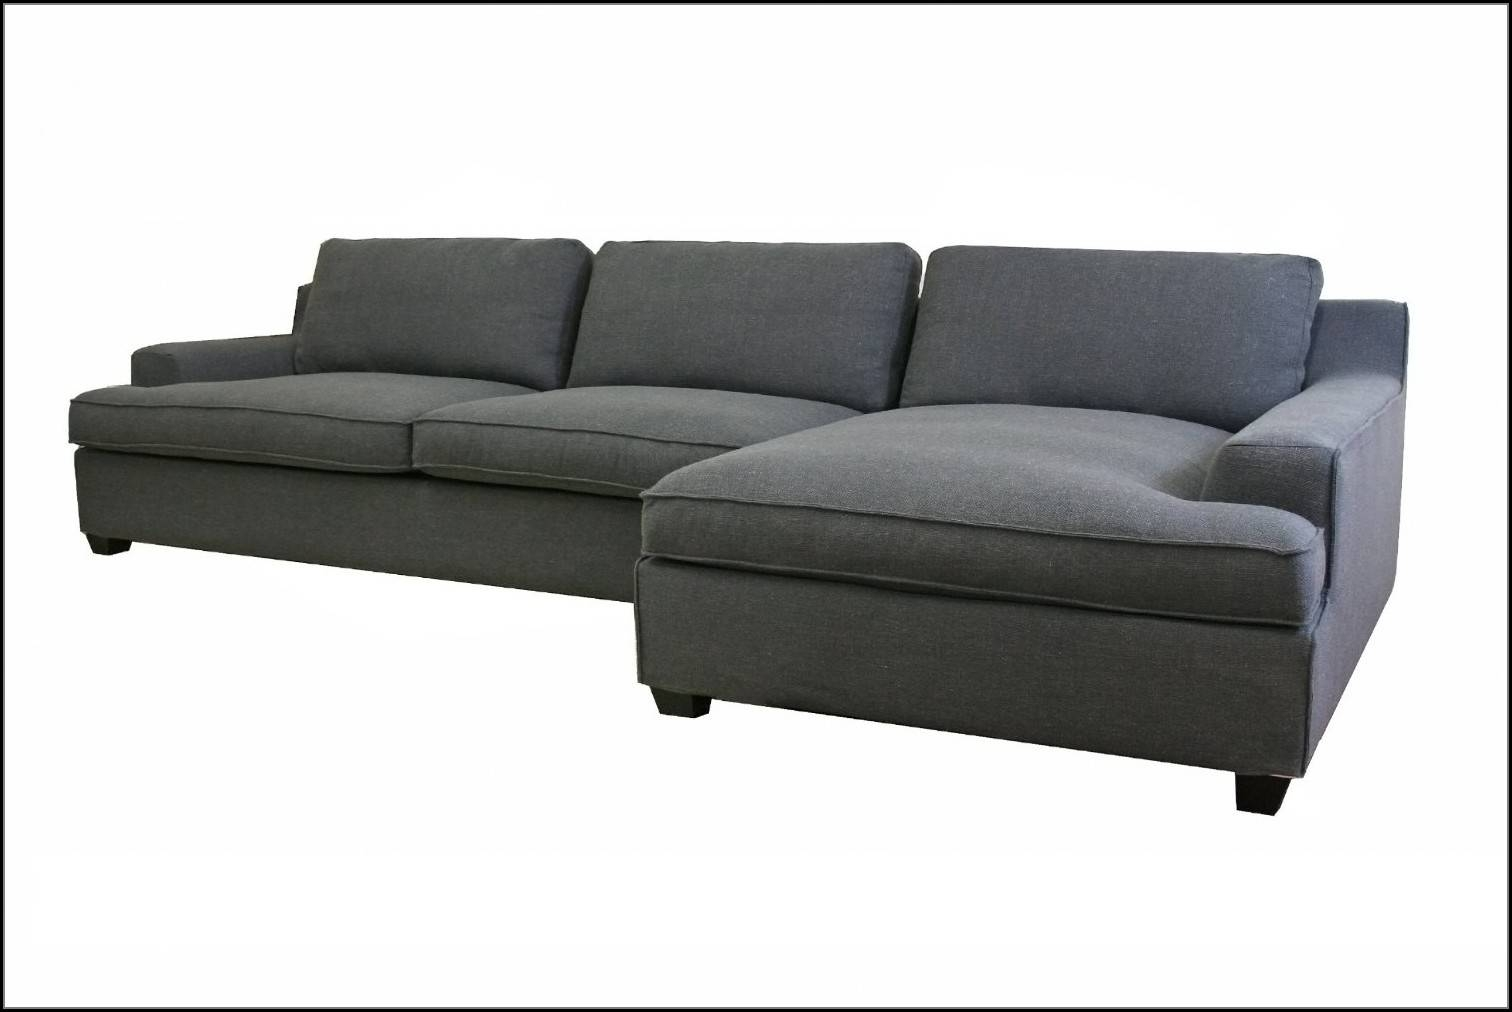 Sectional Sofas Sleepers - Ansugallery within Sleeper Sectional Sofas (Image 16 of 30)